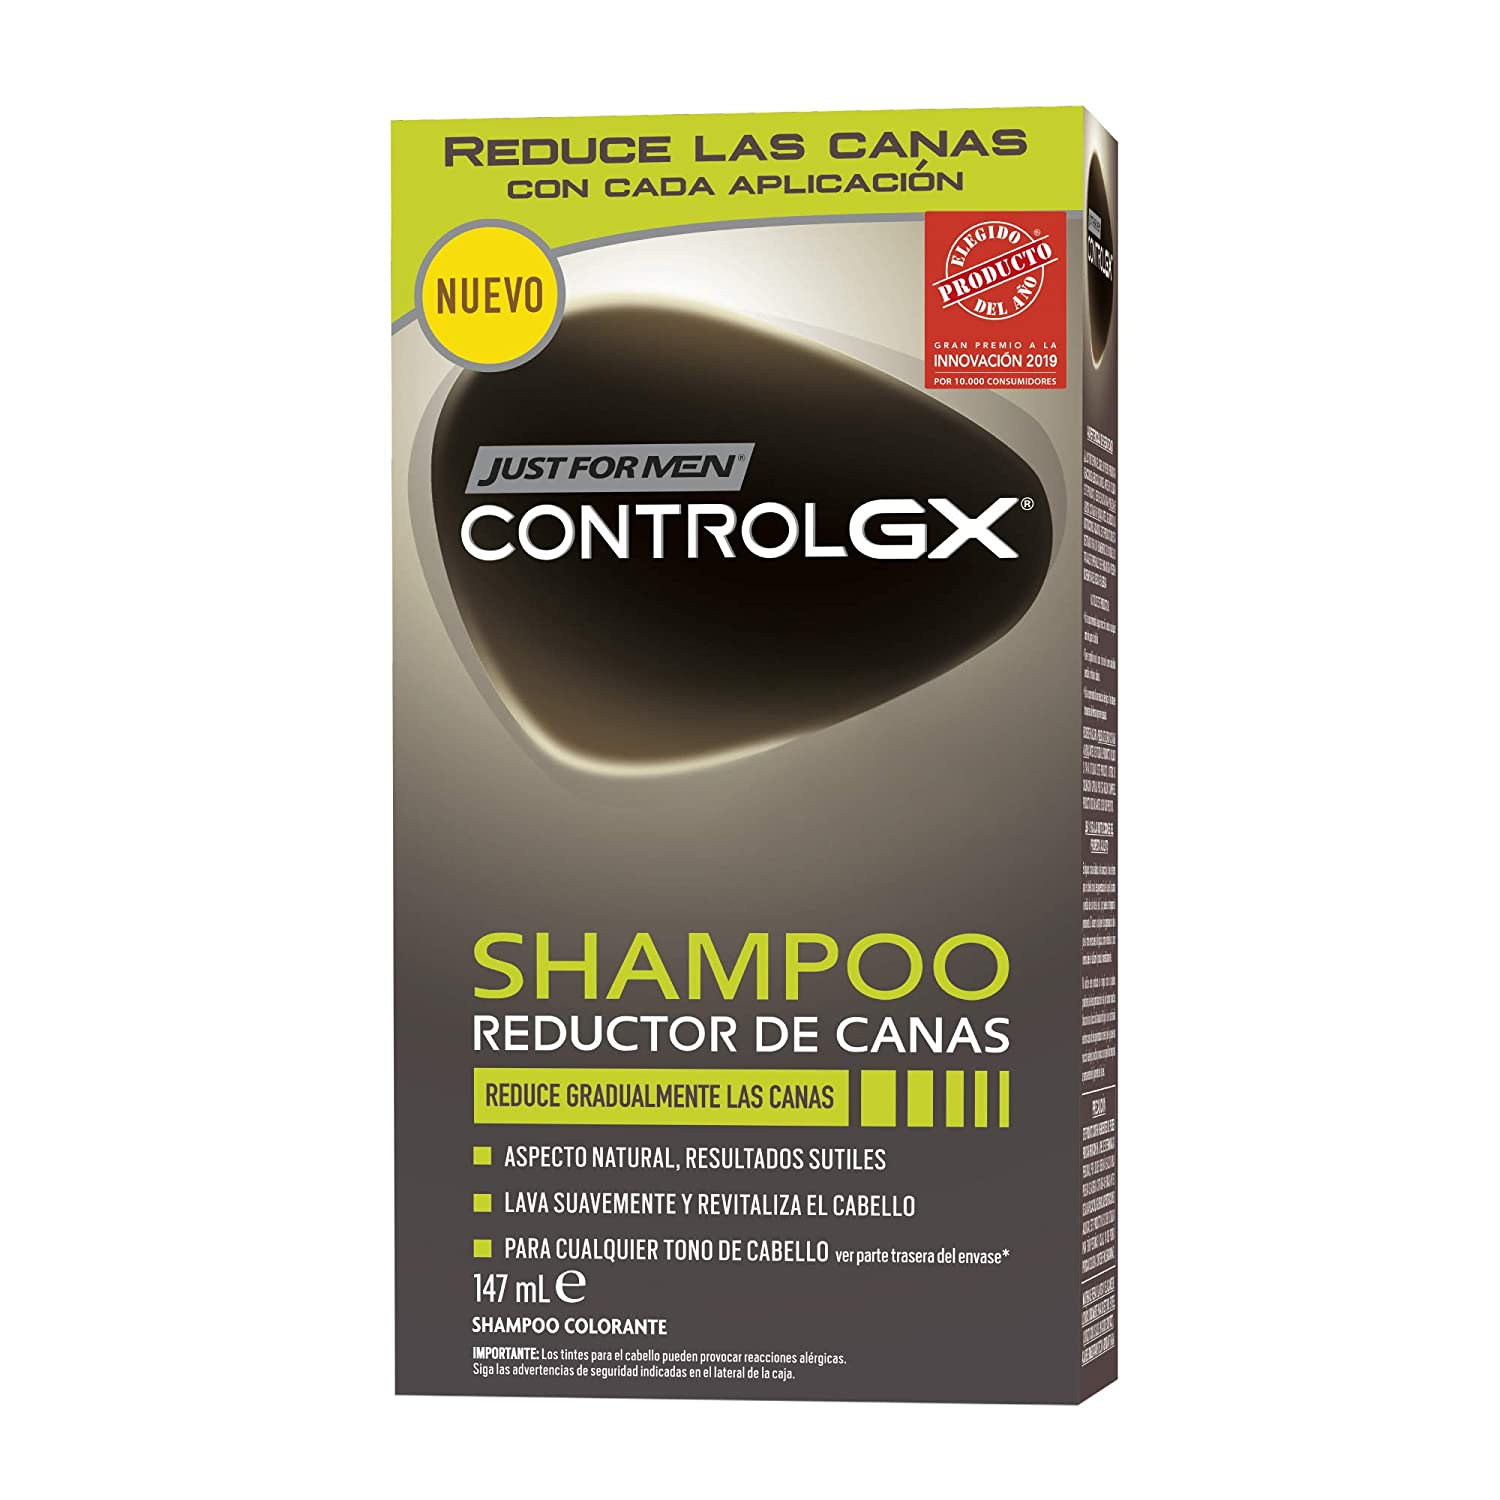 Just For Men Control GX Champú Reductor de Canas - Tinte para las ...